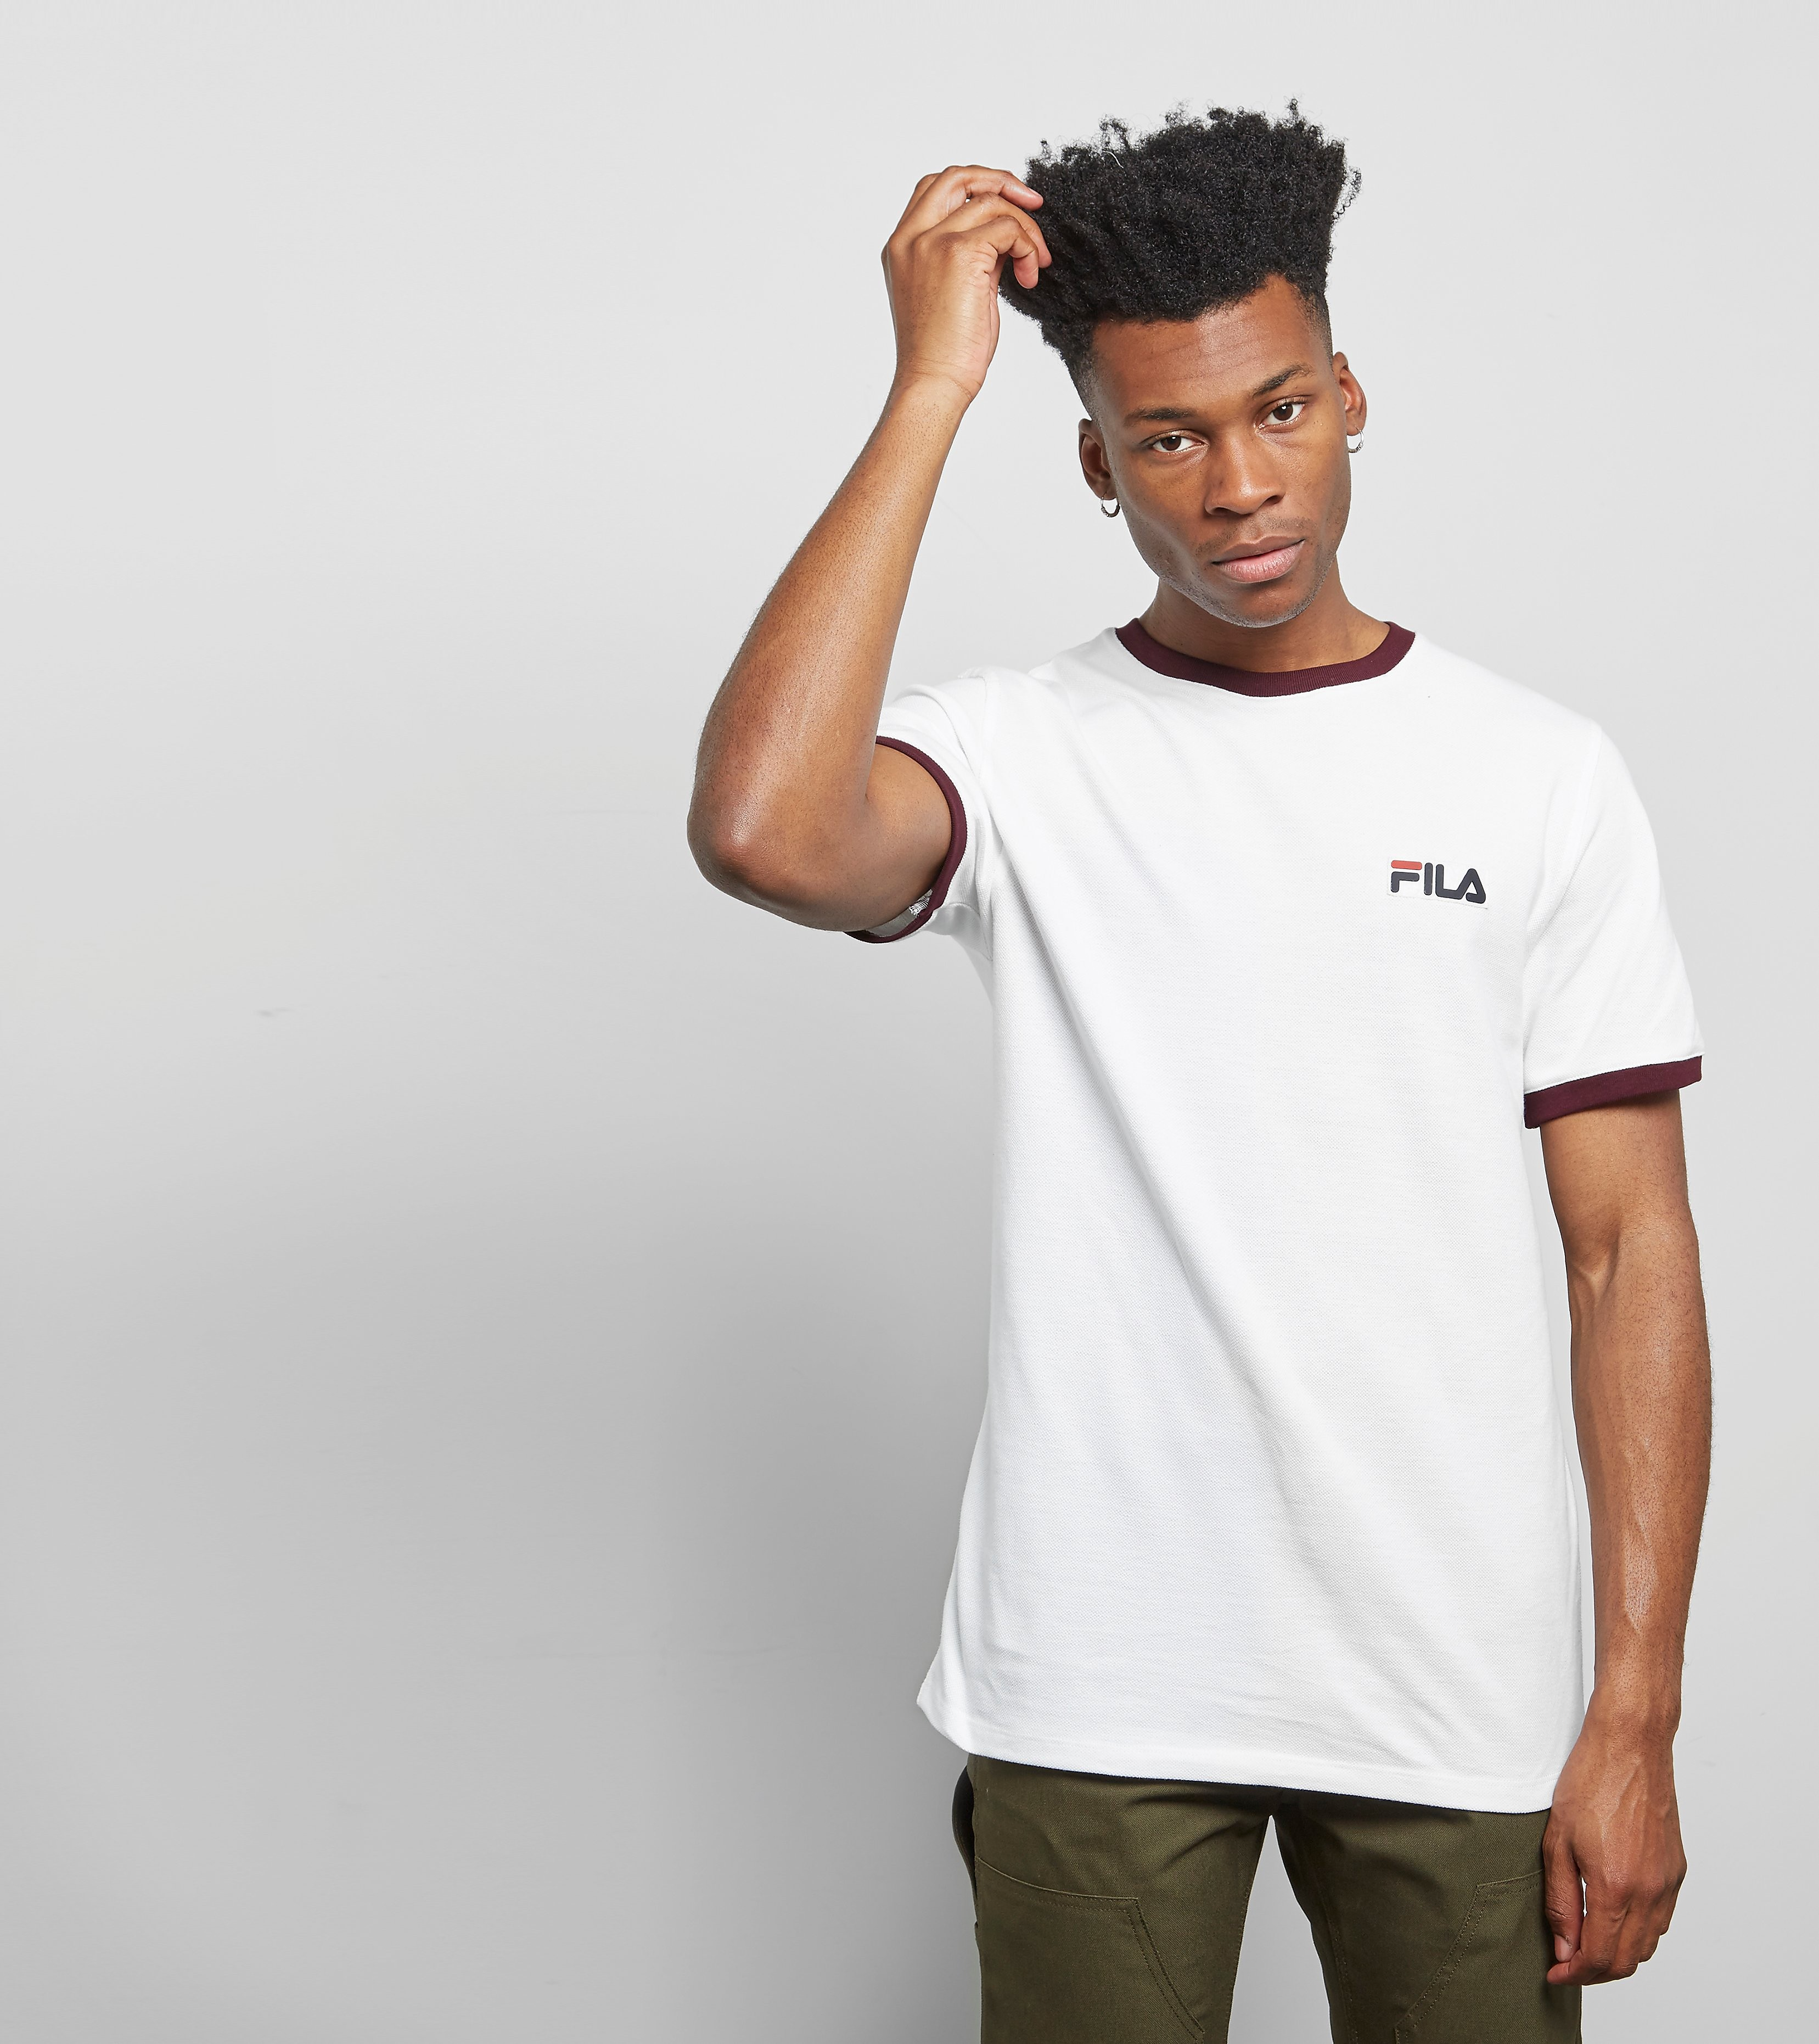 Fila Lathuile Optic T-Shirt - size? Exclusive